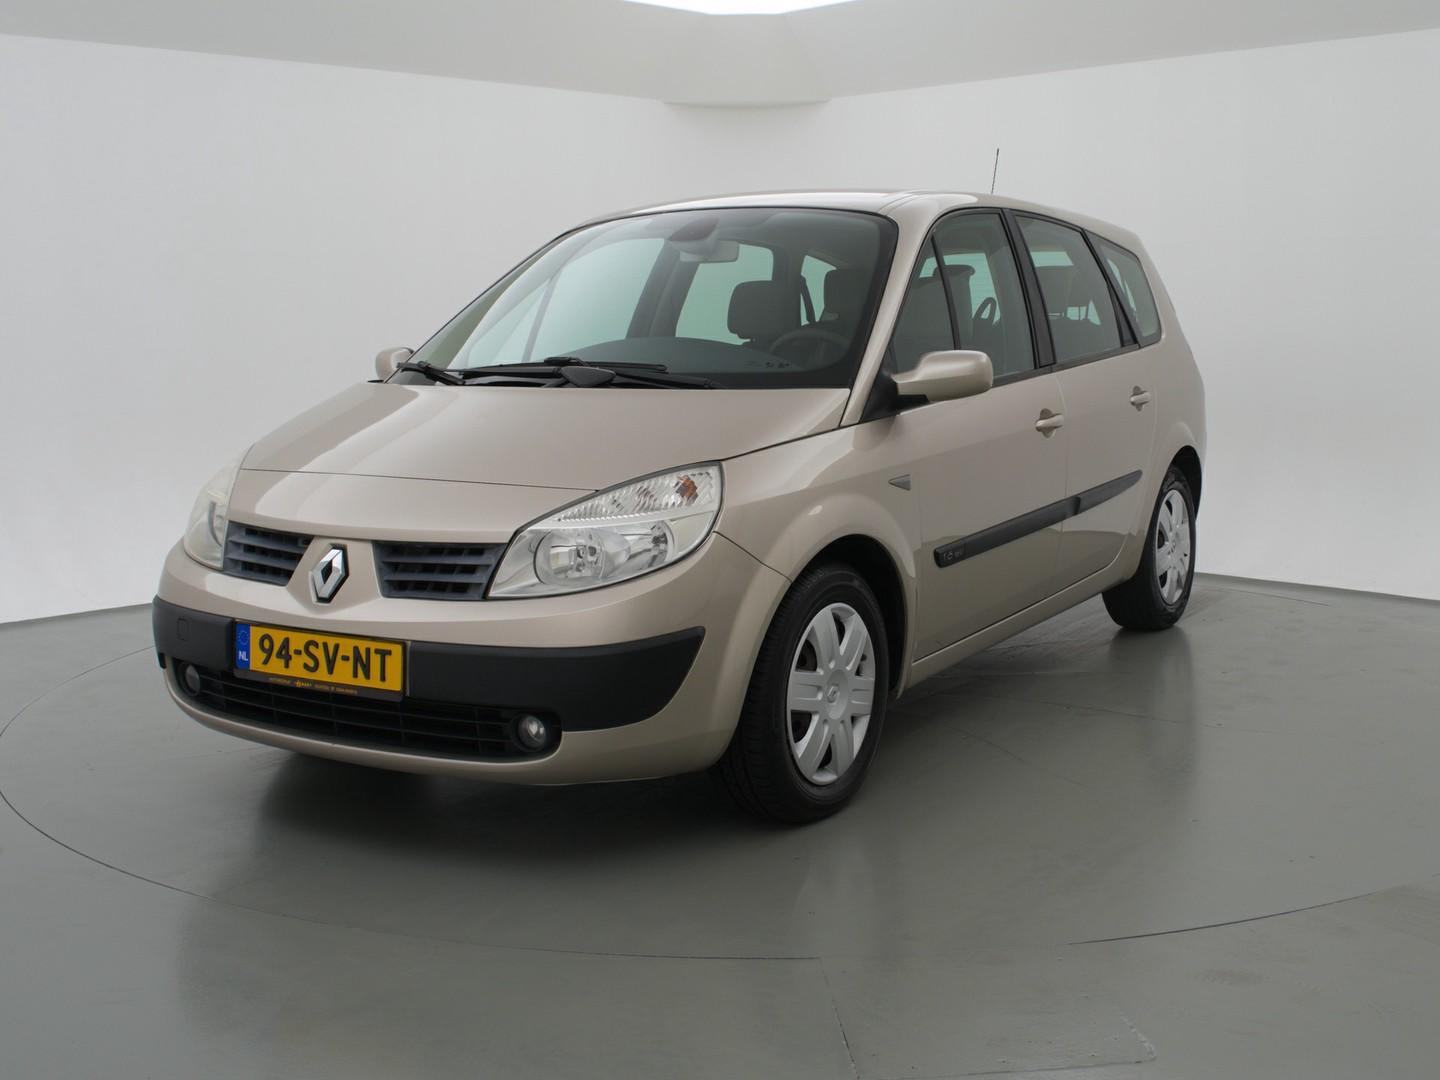 Renault Grand scénic 1.6 16v 7-persoons + climate / cruise control